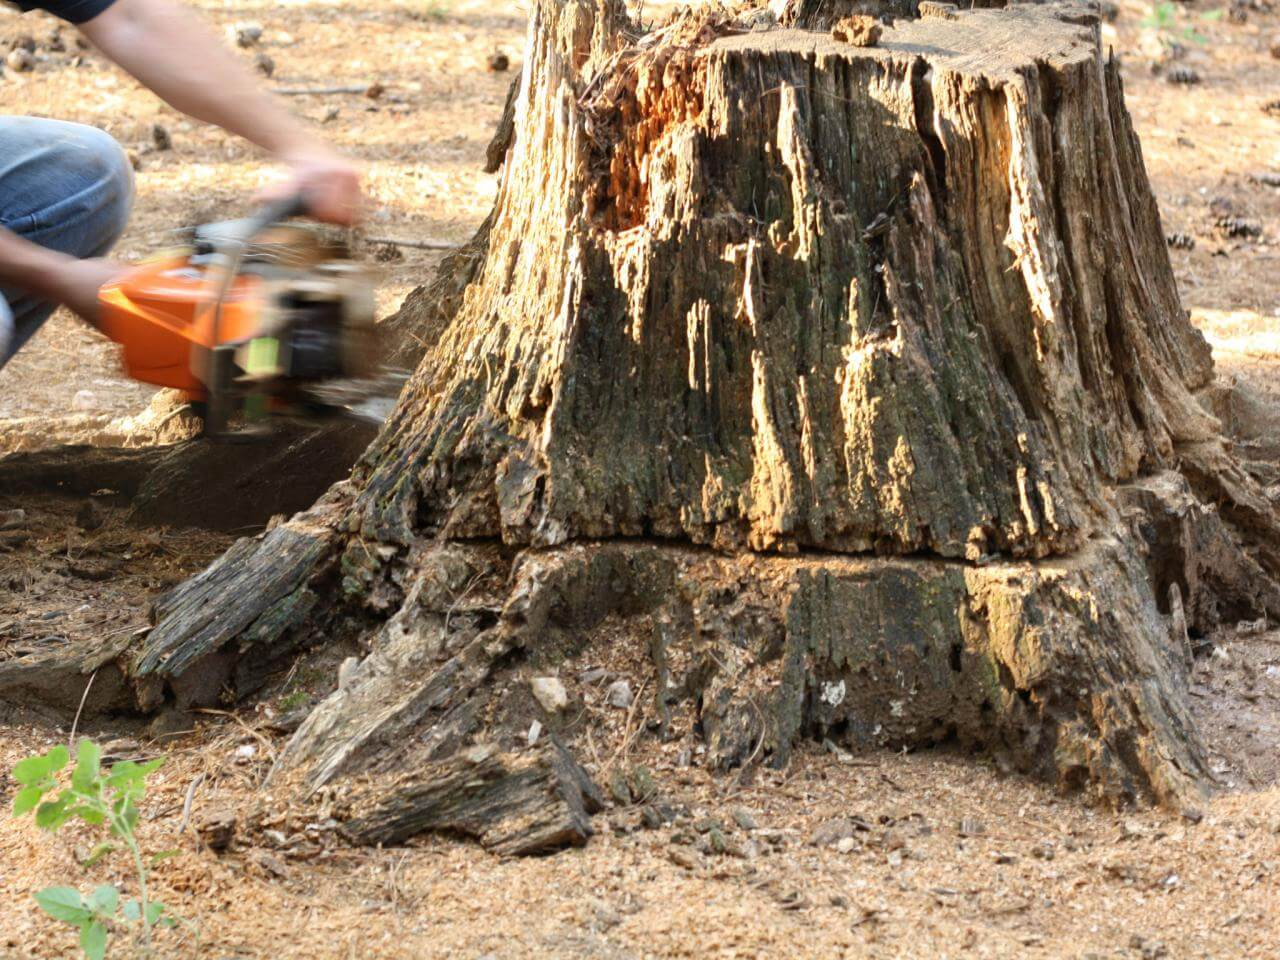 Stump Removal-Springfield Tree Trimming and Stump Grinding Services-We Offer Tree Trimming Services, Tree Removal, Tree Pruning, Tree Cutting, Residential and Commercial Tree Trimming Services, Storm Damage, Emergency Tree Removal, Land Clearing, Tree Companies, Tree Care Service, Stump Grinding, and we're the Best Tree Trimming Company Near You Guaranteed!